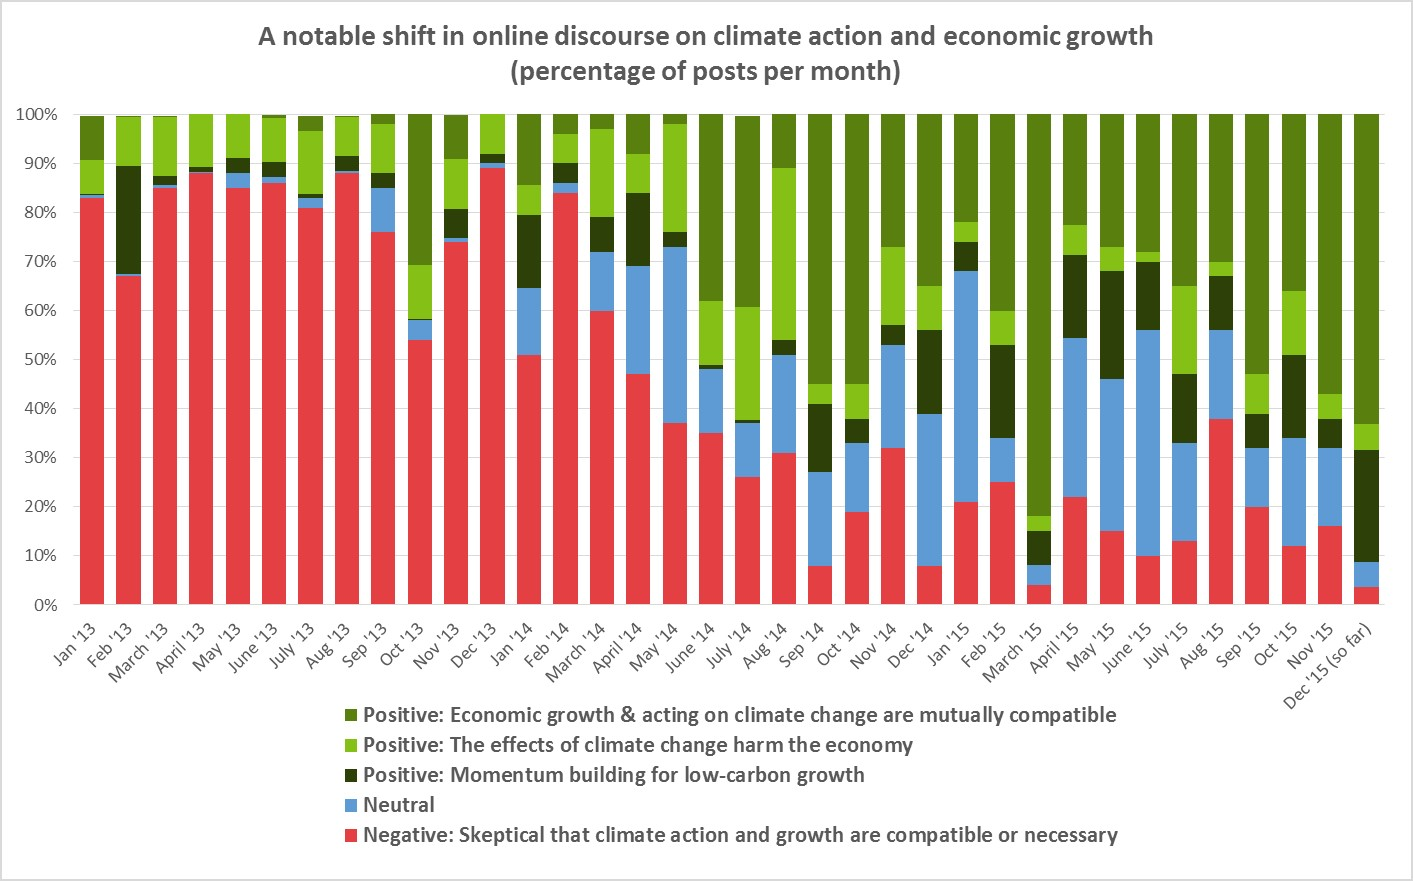 Proportion of Posts about Climate Action and Economic Growth to 13 December 2015